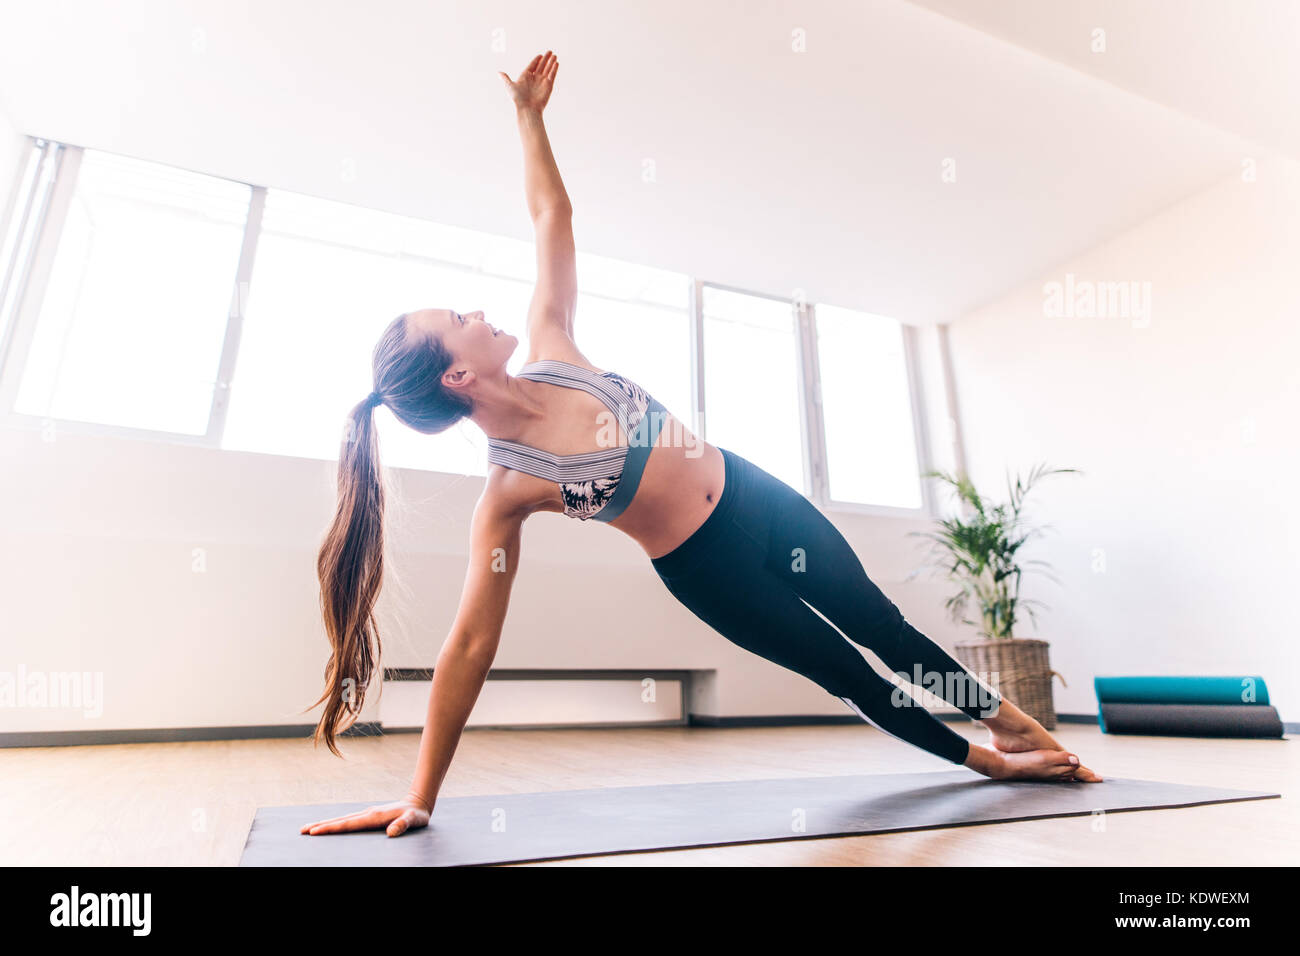 Slim woman in side plank pose at yoga class, Vasisthasana exercise. Female balancing on mat indoors at fitness gym - Stock Image